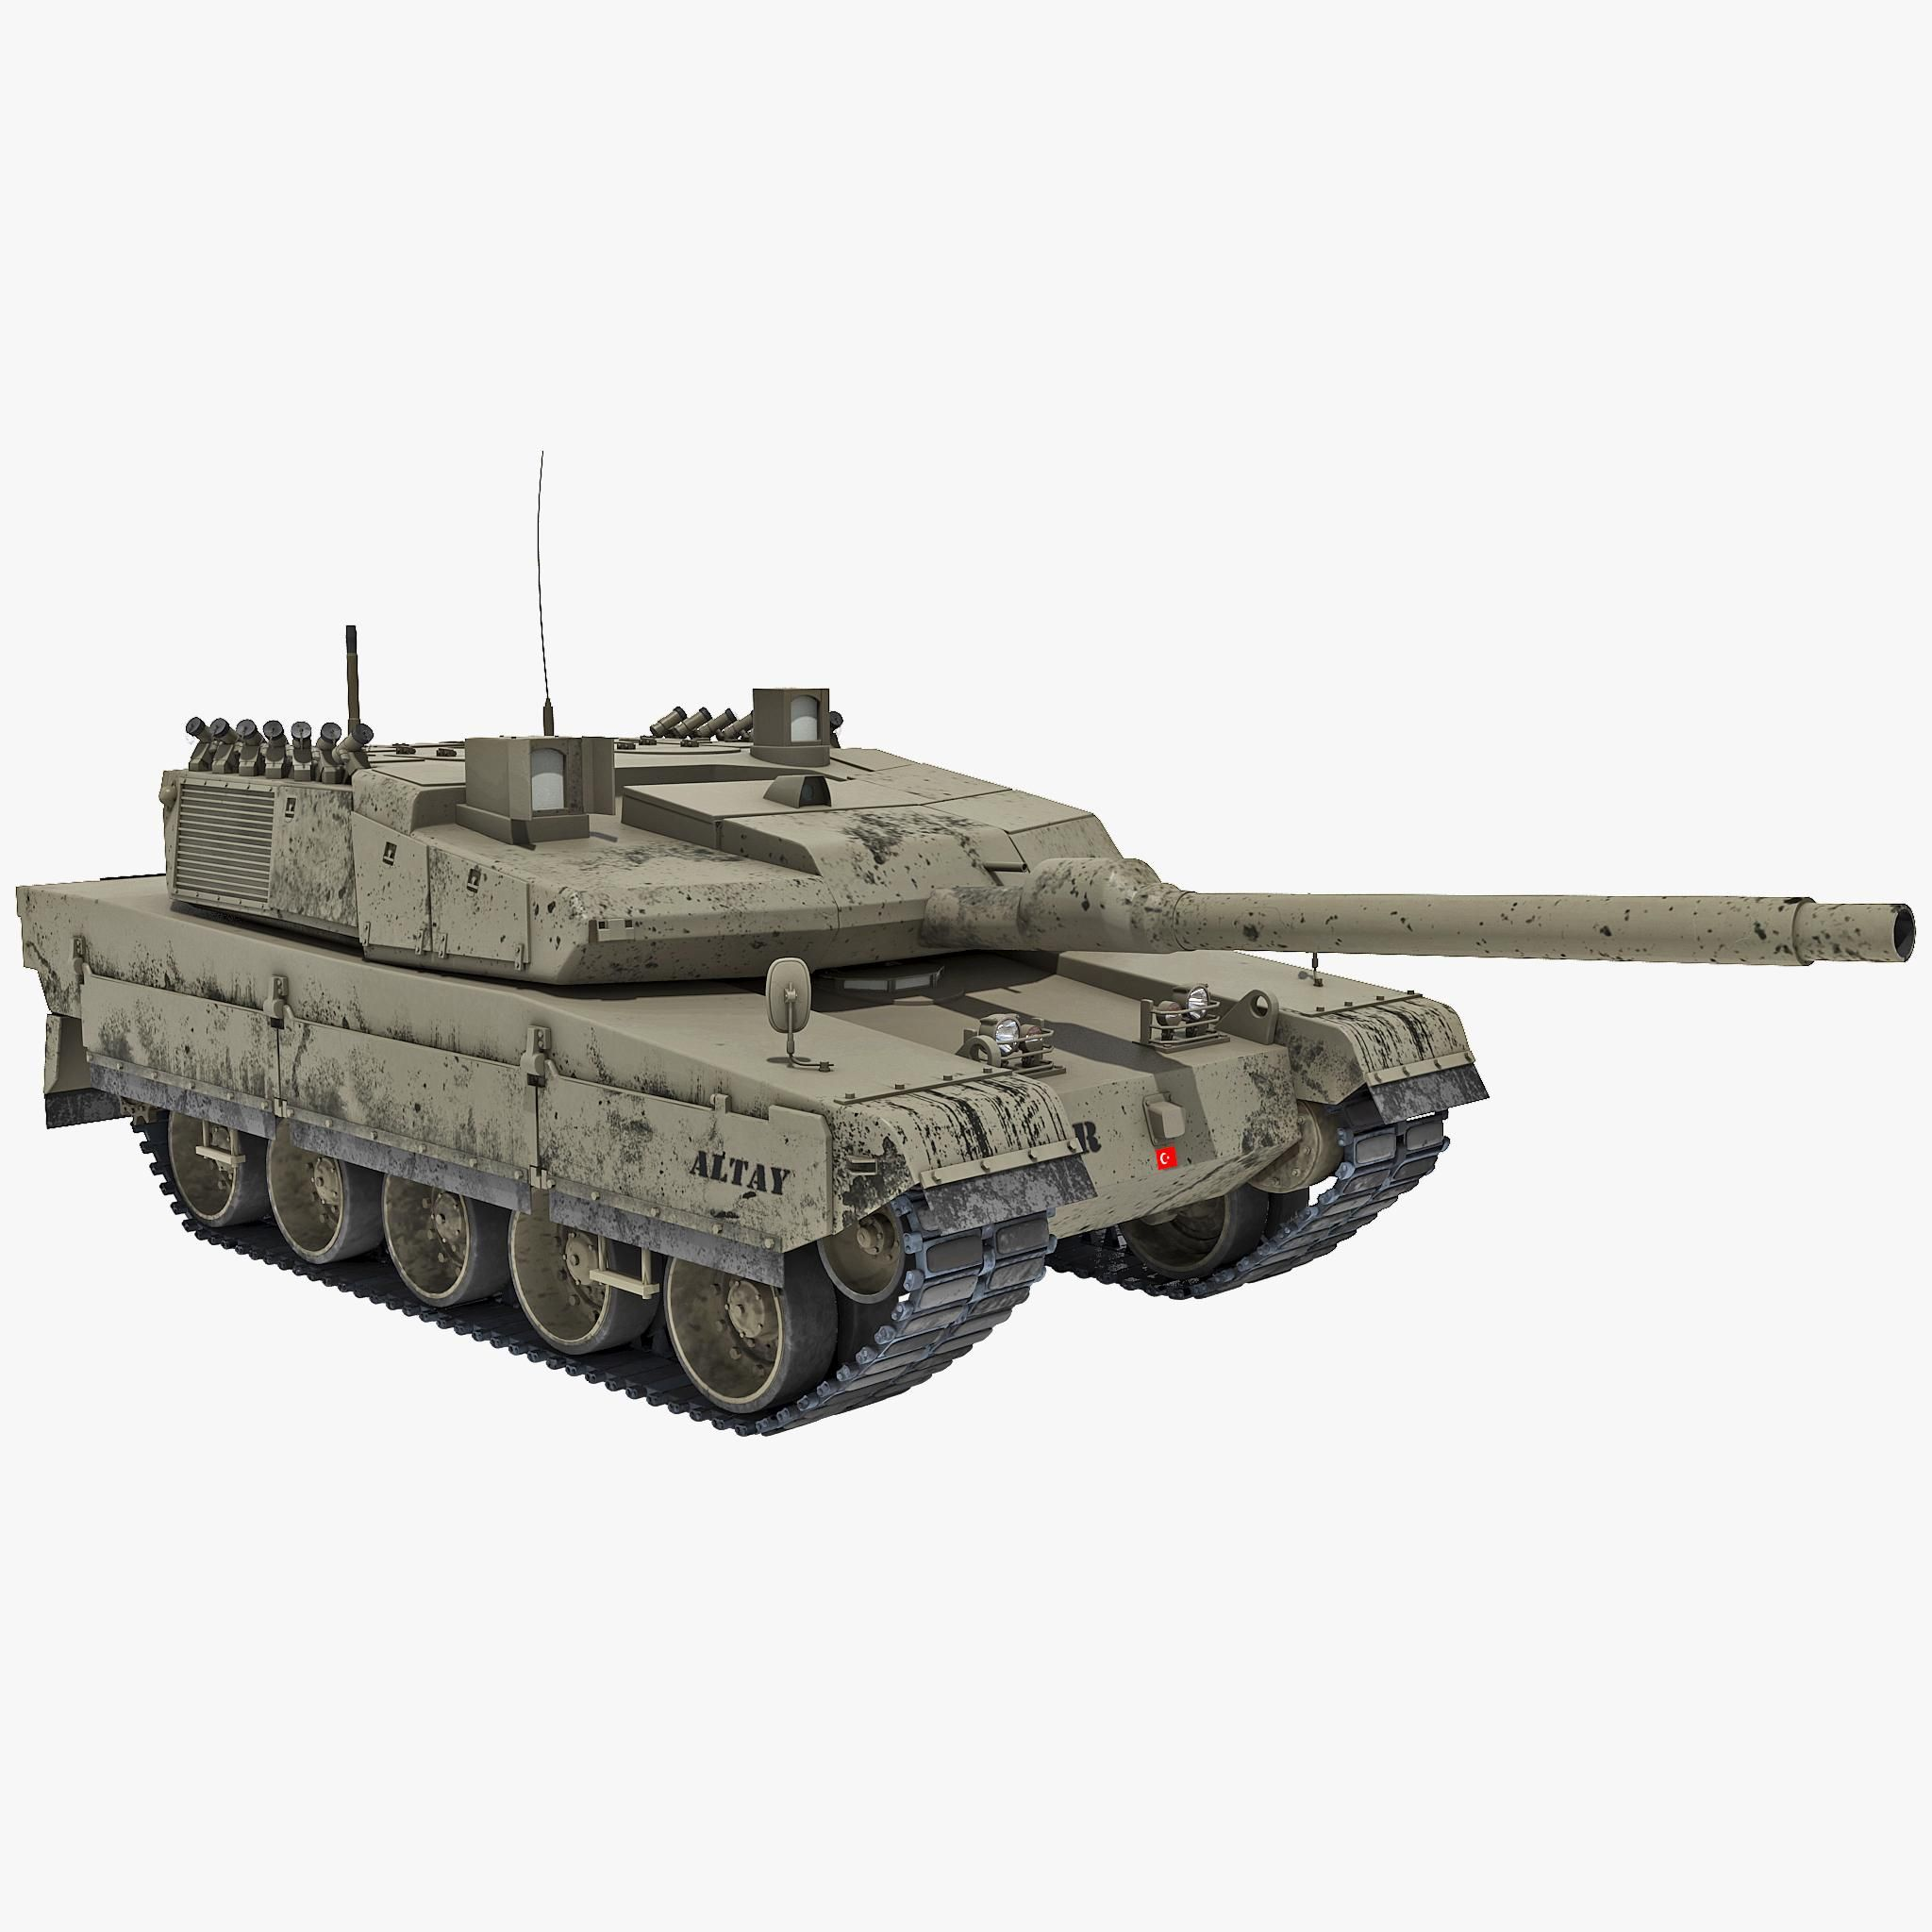 Altay Turkish Main Battle Tank 2 3d Model Ad Main Turkish Altay Model Battle Tank Tanks Military Turkish Tanks